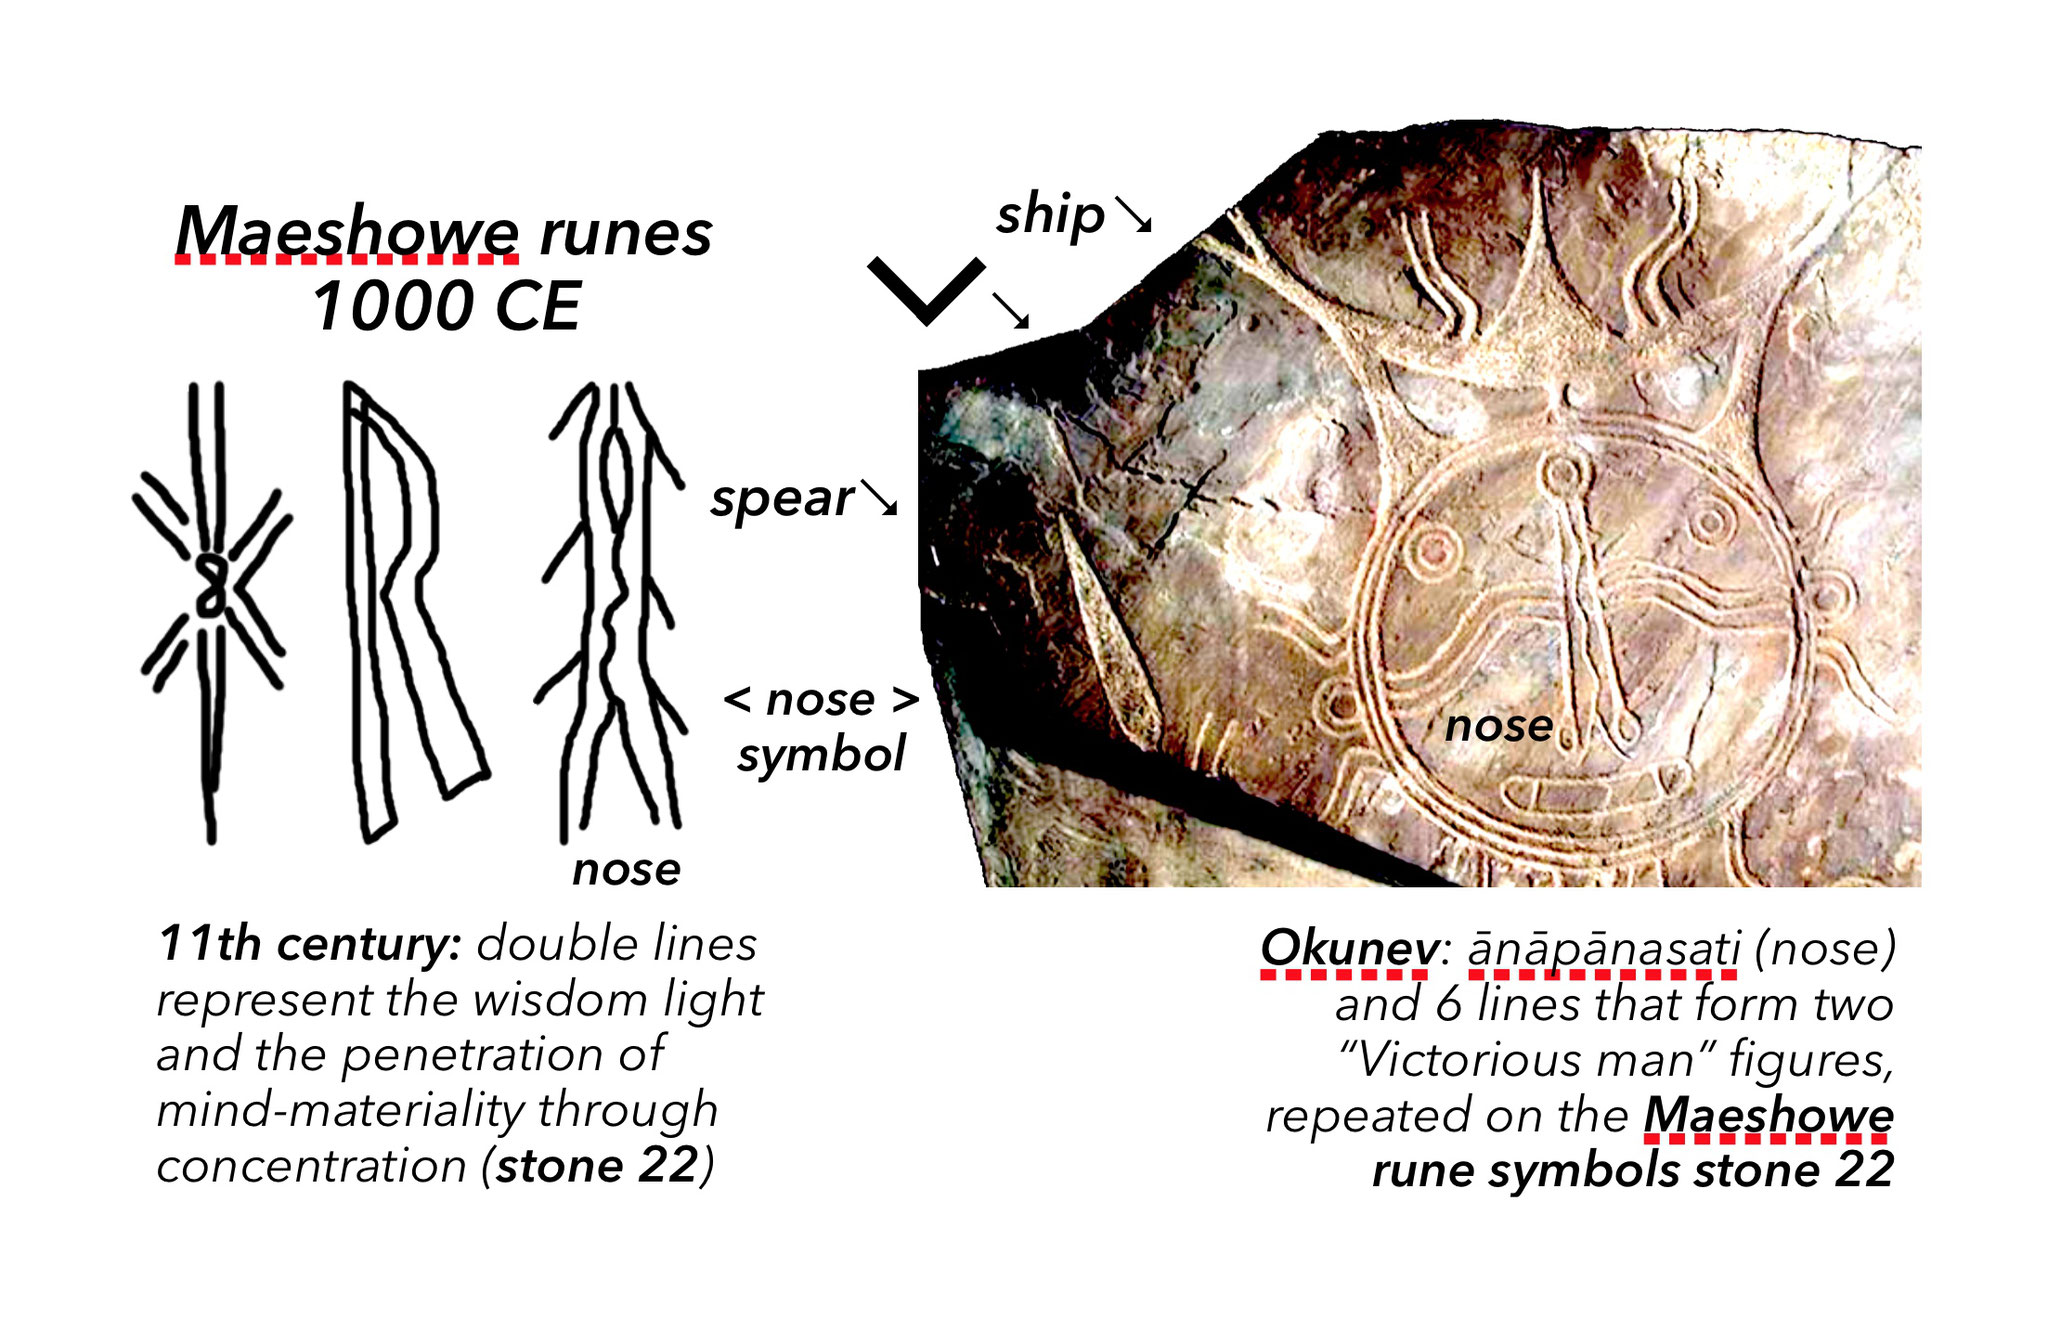 """The """"8"""" of the Phaistos warrior still used in 11th-century Maeshowe inscriptions which are closely linked to Okunev images from Siberia, were both sites visited by envoys of Ashoka c. 250 BC?"""